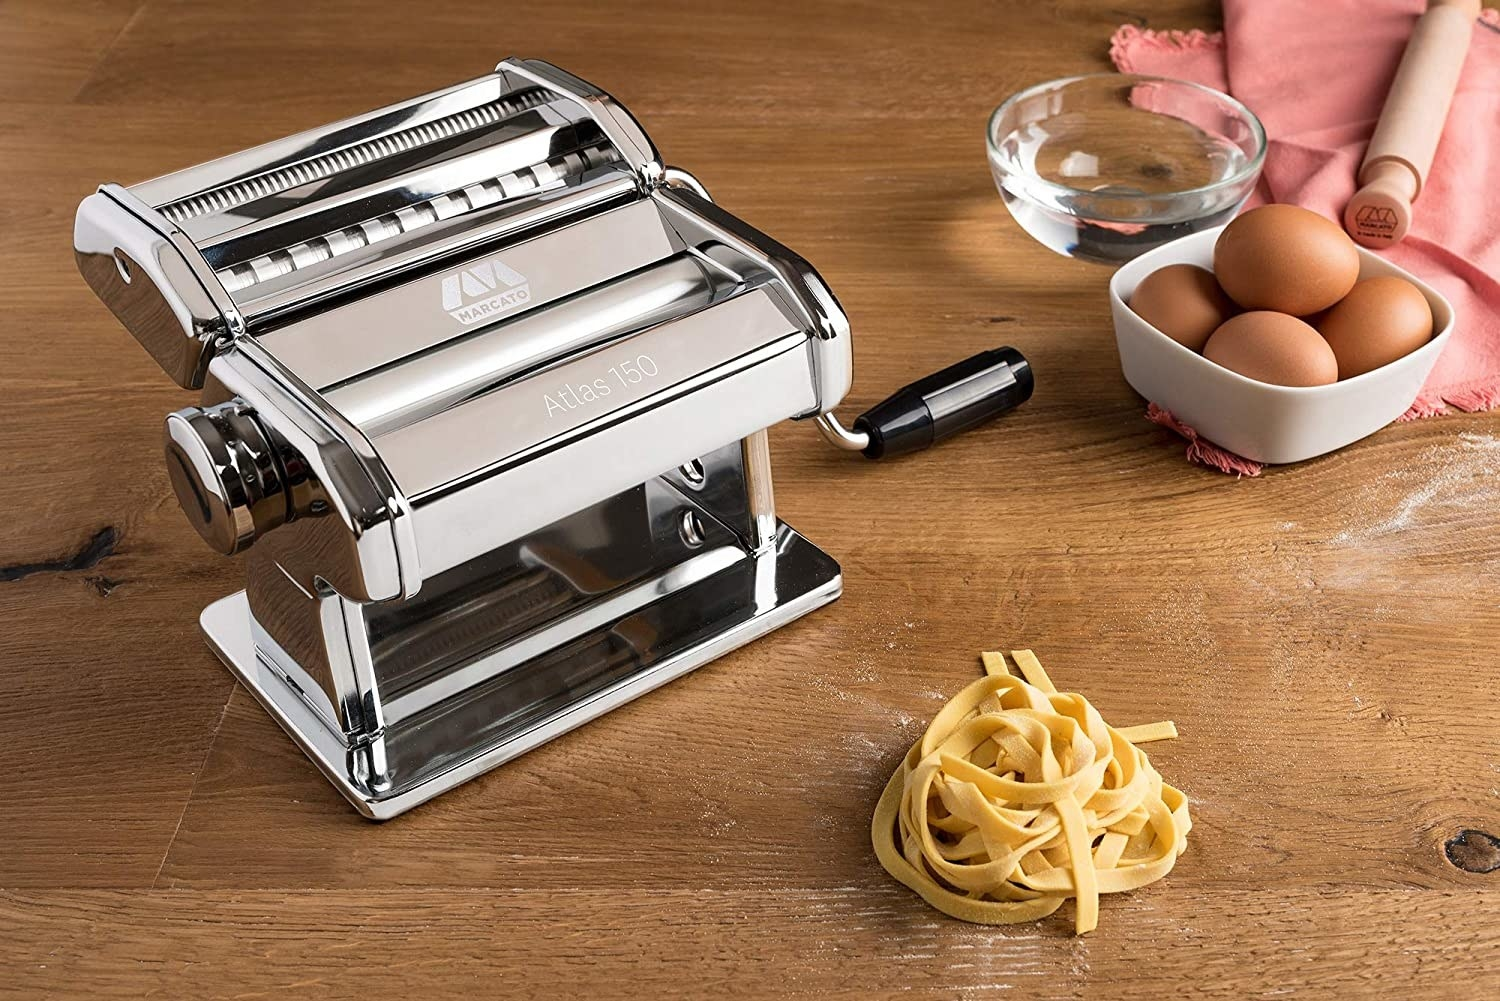 The pasta machine next to a small pile of fresh pasta